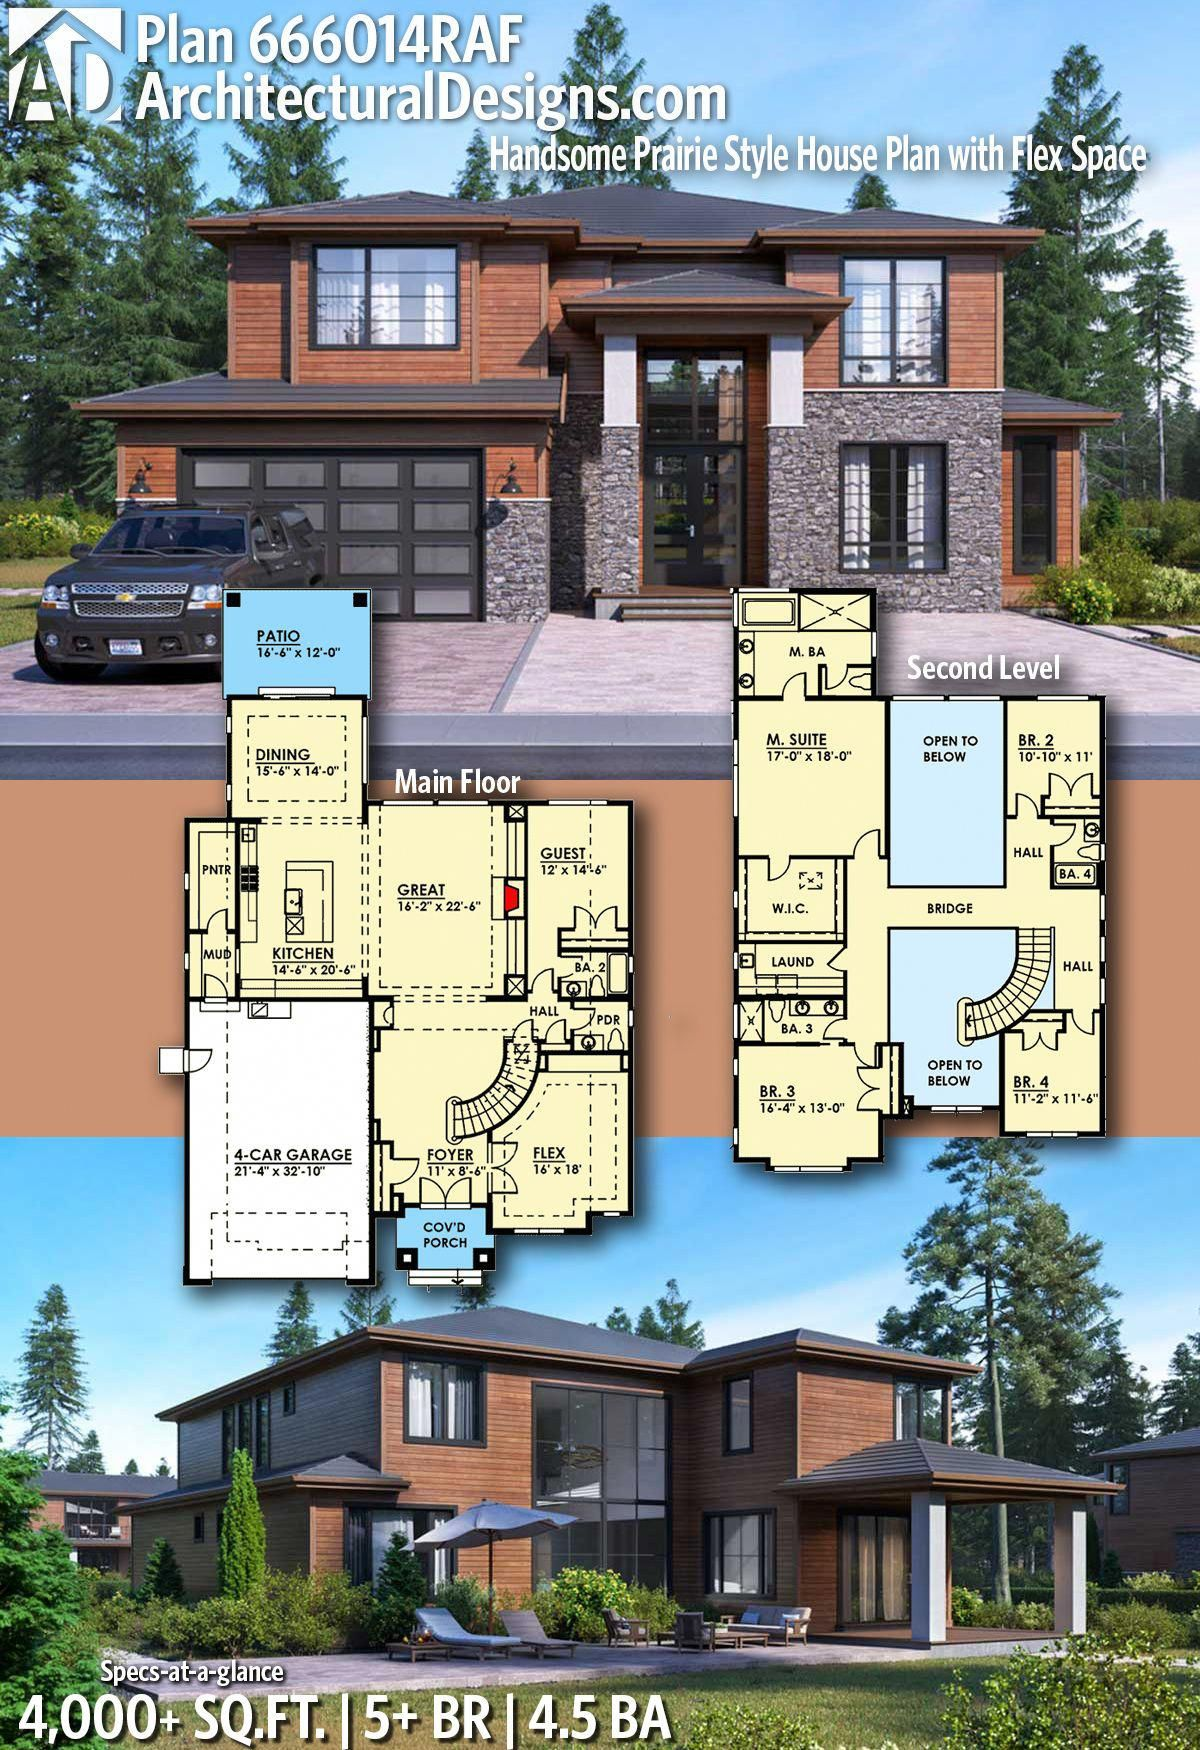 Architectural designs modern house plan raf beds baths sq also best houses images in rh pinterest